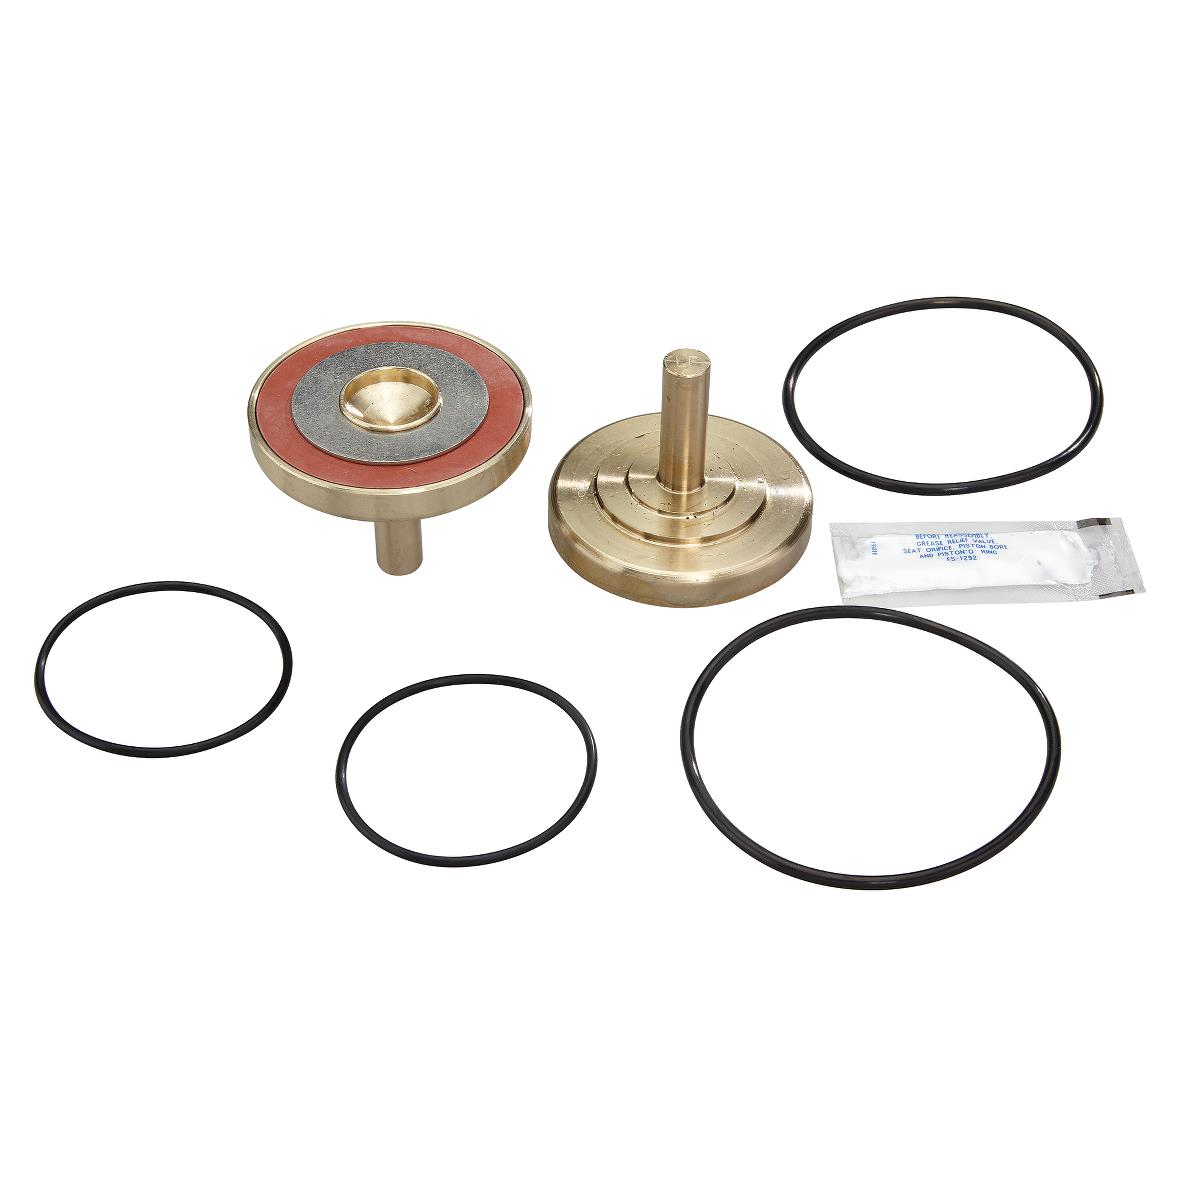 WATTS® 0794065 LFRK 909M1-RC3 Parts Kit, For Use With: Model 009/LF009 Reduced Pressure Zone Assemblies, Rubber, Domestic